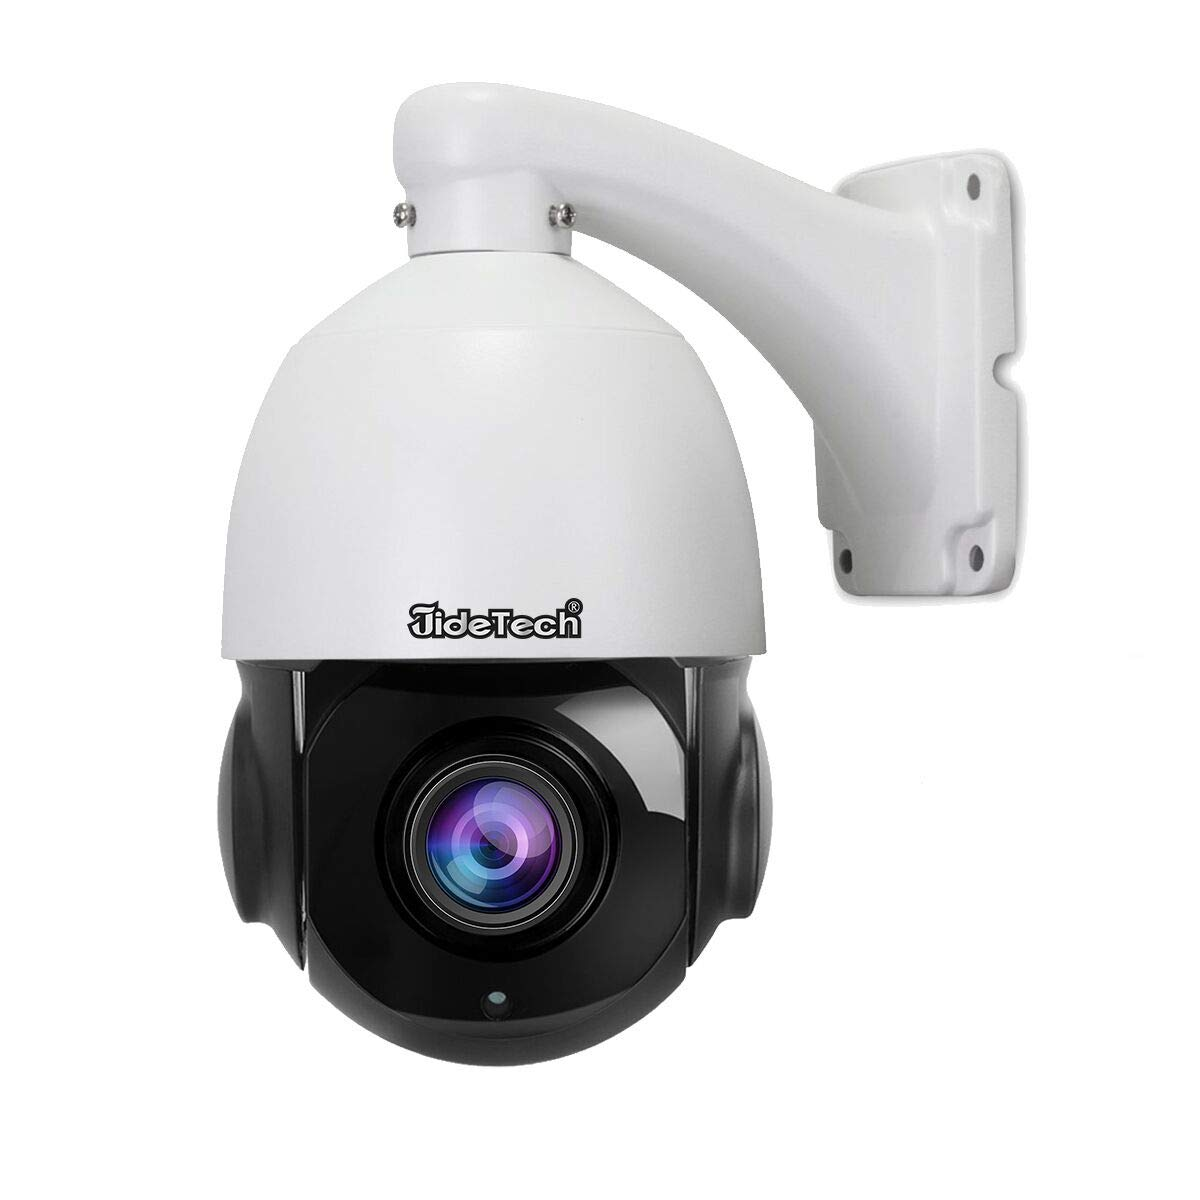 PTZ POE IP 2MP High Speed Waterproof Dome Camera with 20X Optical Zoom Pan Tilt and Two-Way Audio IR Night Vision Support for Indoor and Outdoor Security